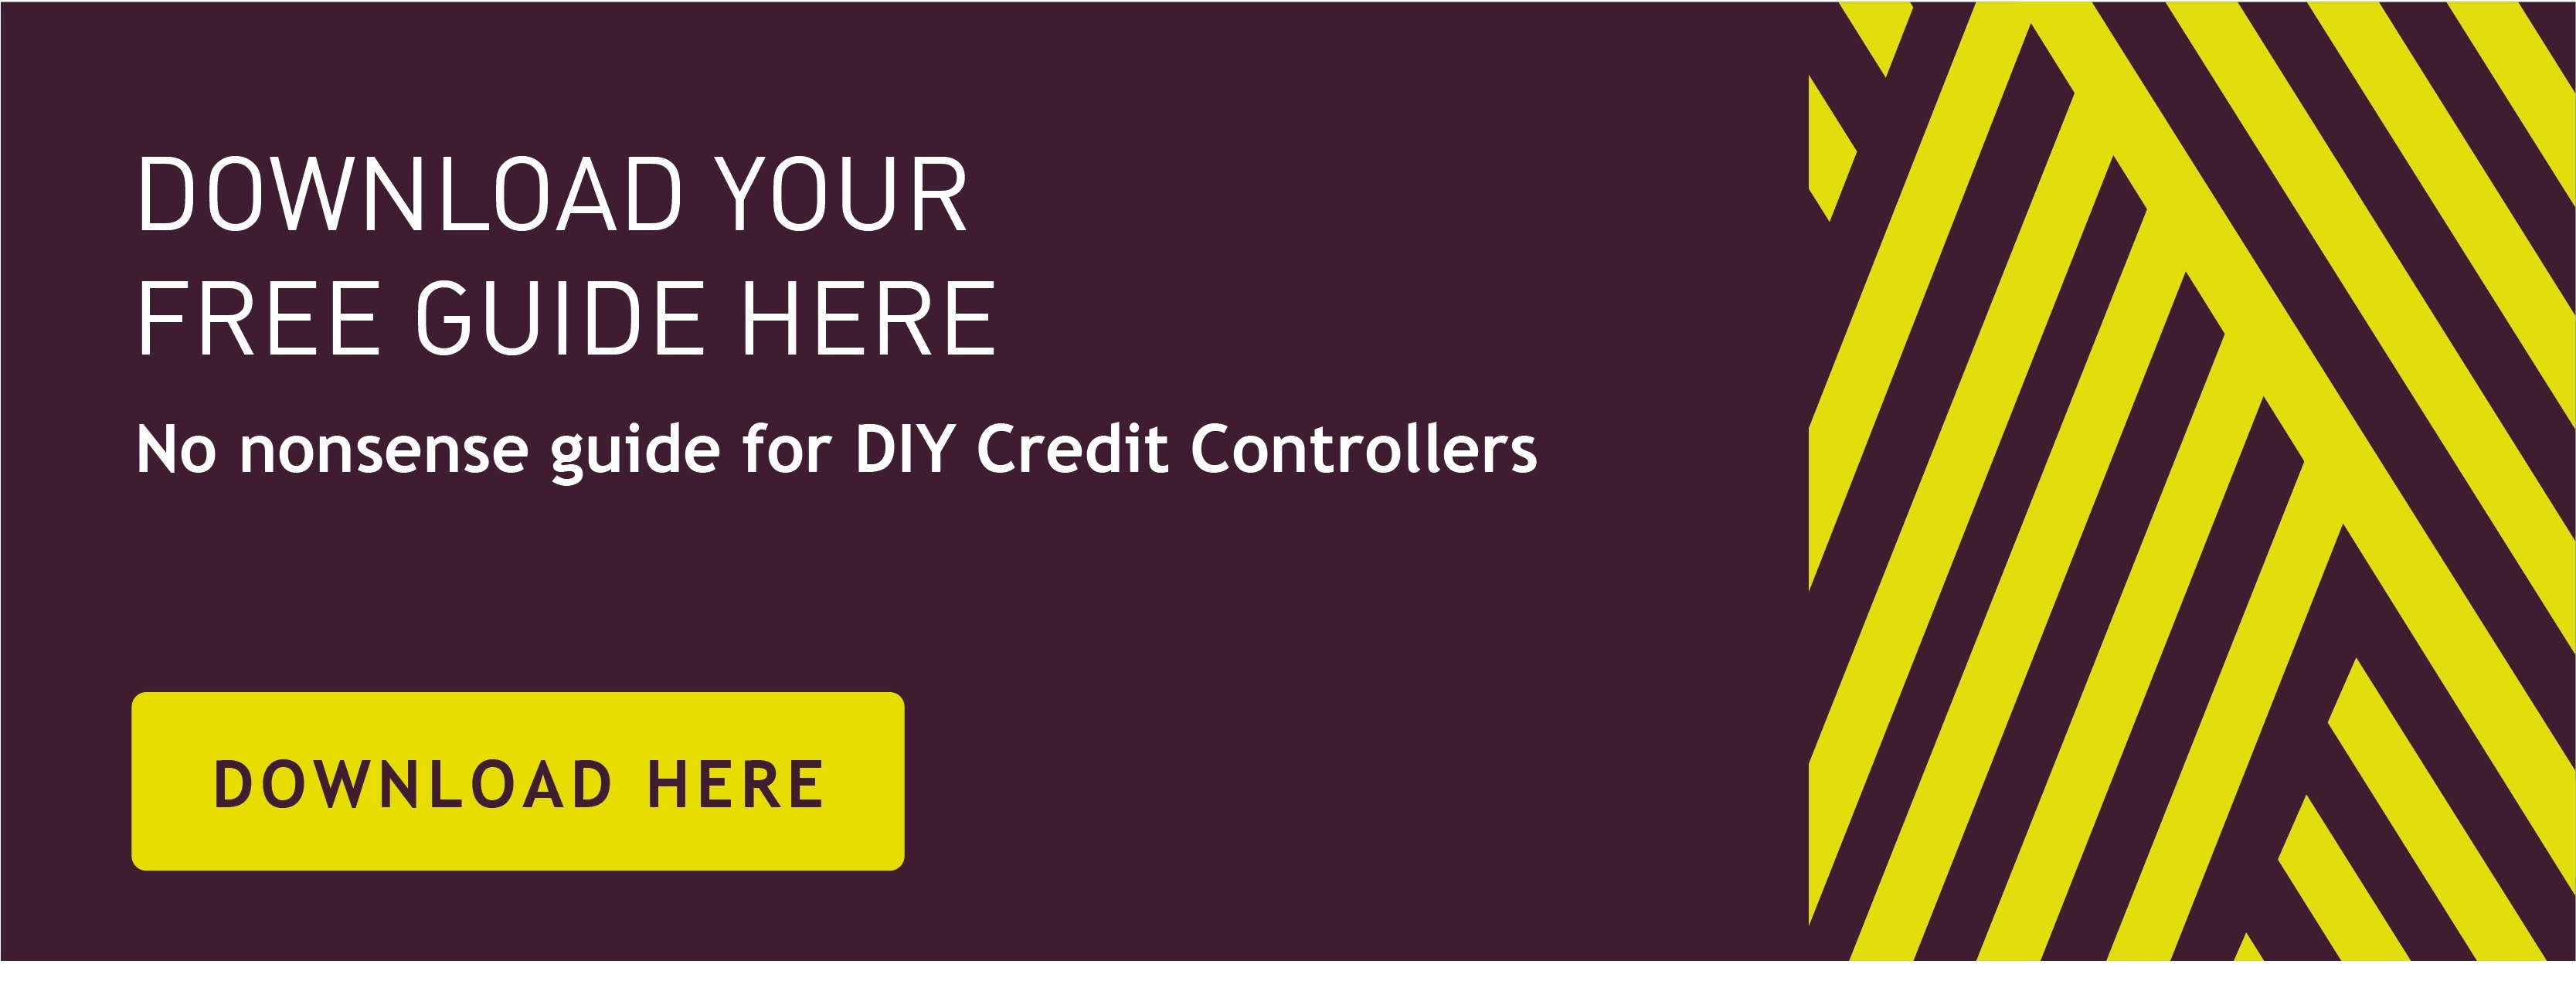 No Nonsense Guide For DIY Credit Controllers